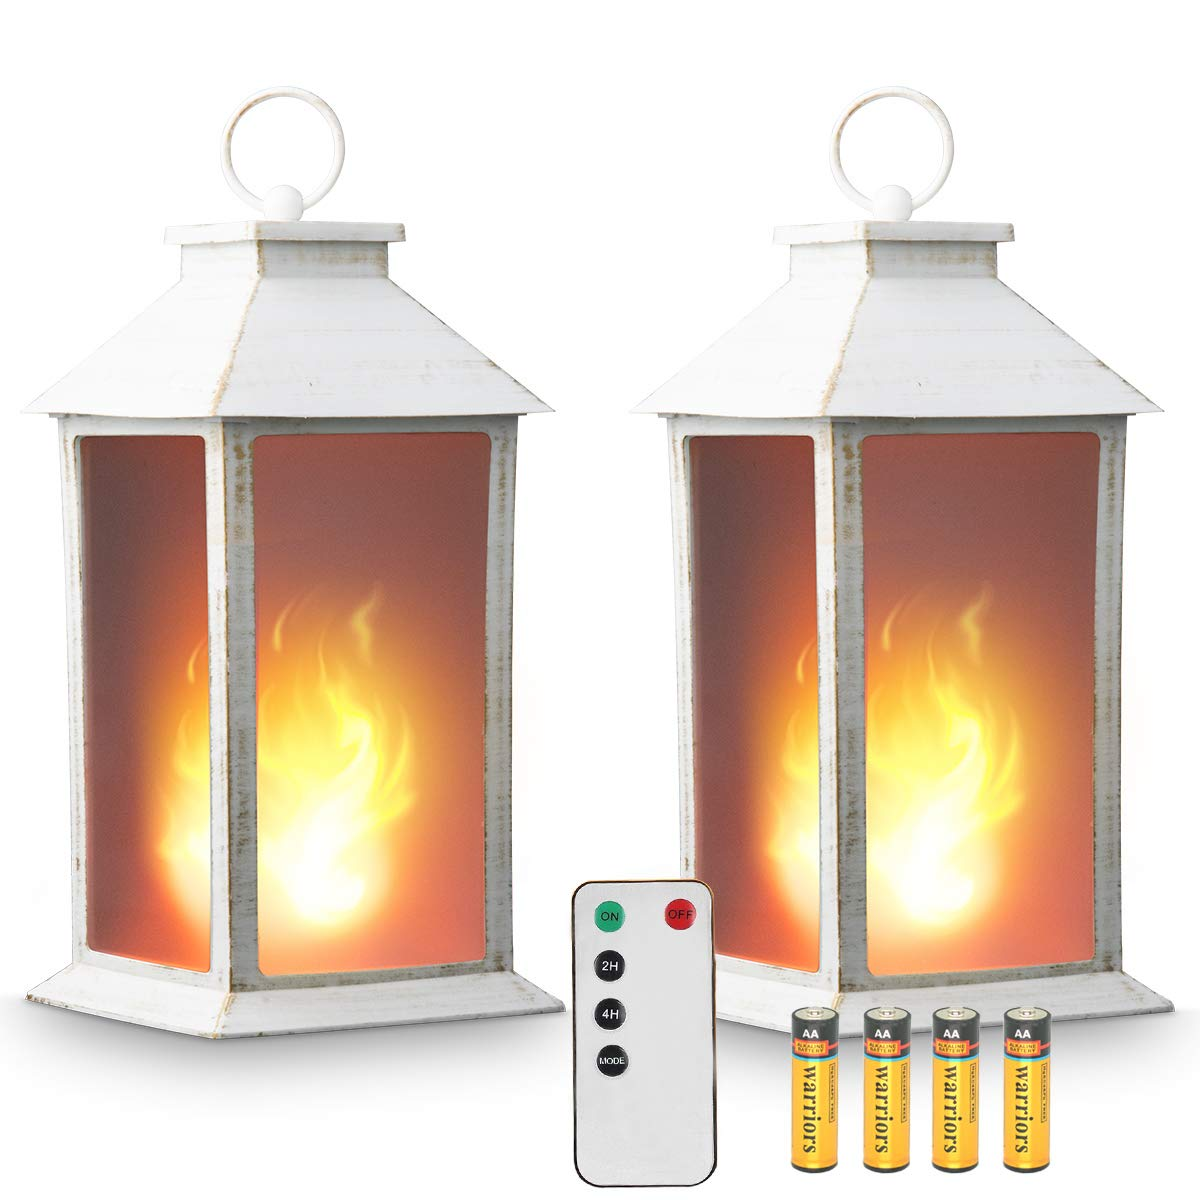 zkee 13'' Vintage Style Decorative Lantern,Flickering Flame Effect LED Lantern,(Remote Control,Timer) Indoor/Outdoor Hanging Lantern,Battery Powered Lantern,Decorative Candle Lantern,White (Set of 2)